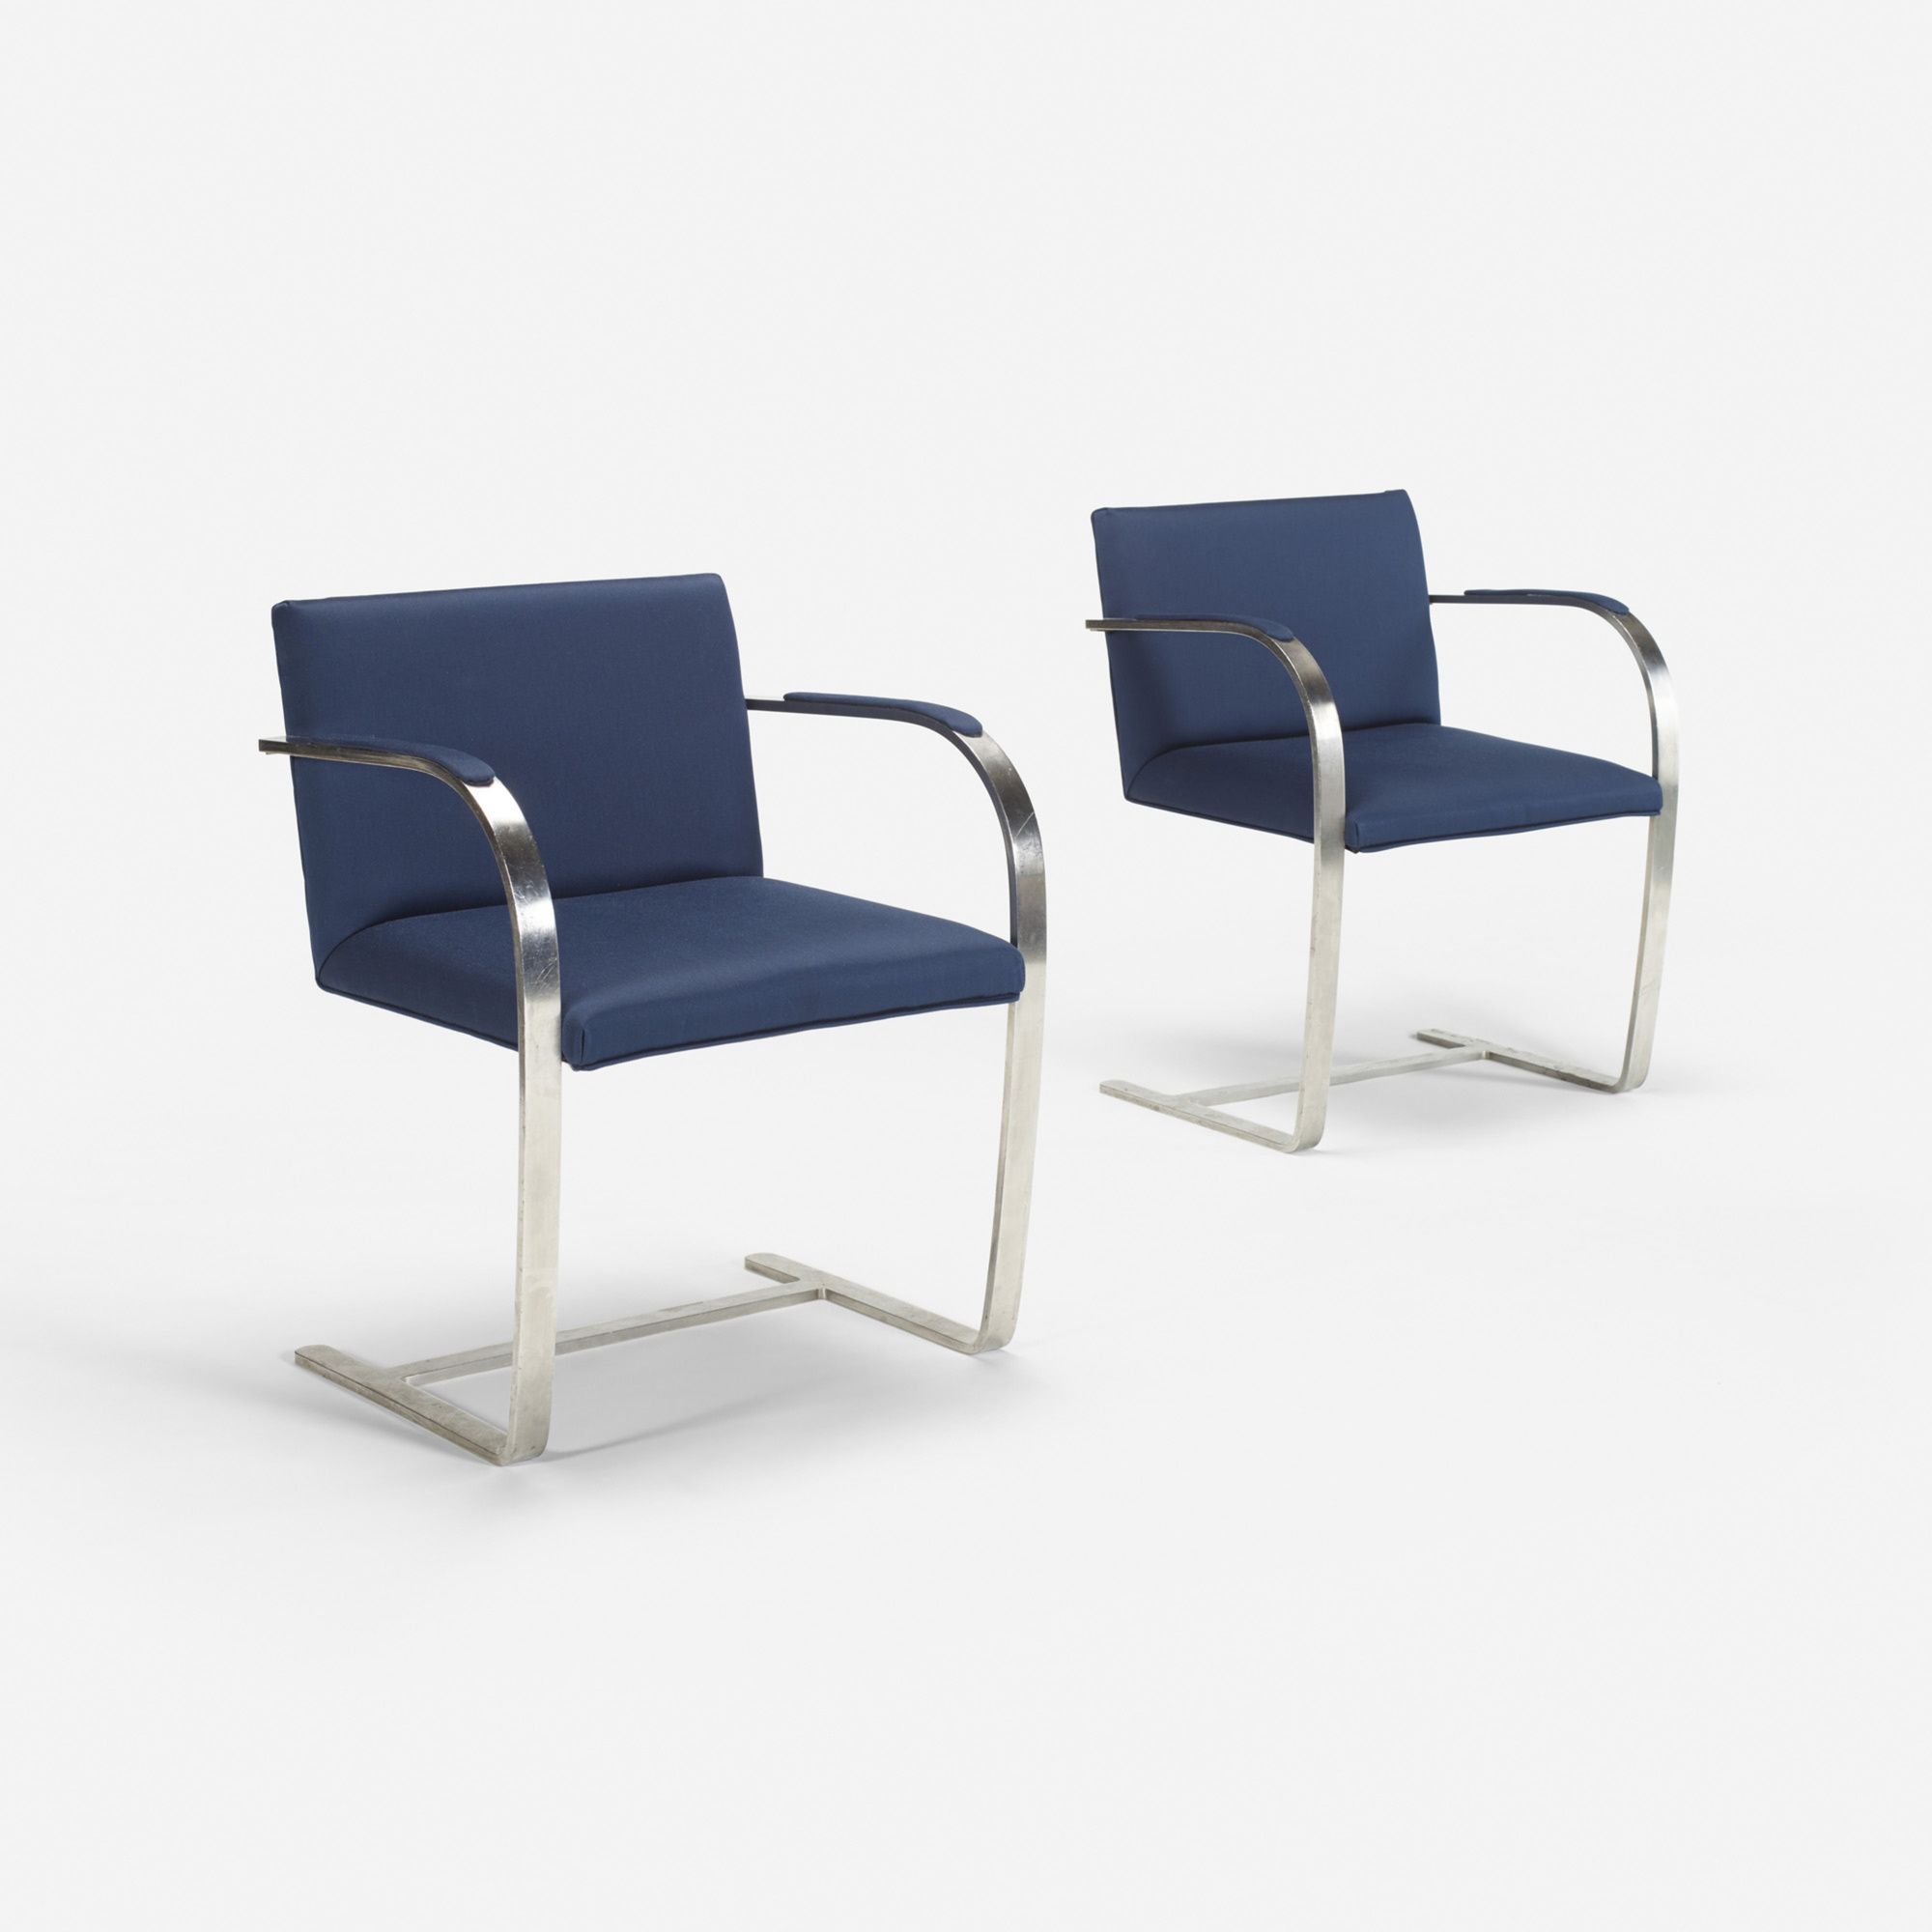 211: Ludwig Mies van der Rohe / Brno chairs from The Four Seasons, pair (1 of 1)